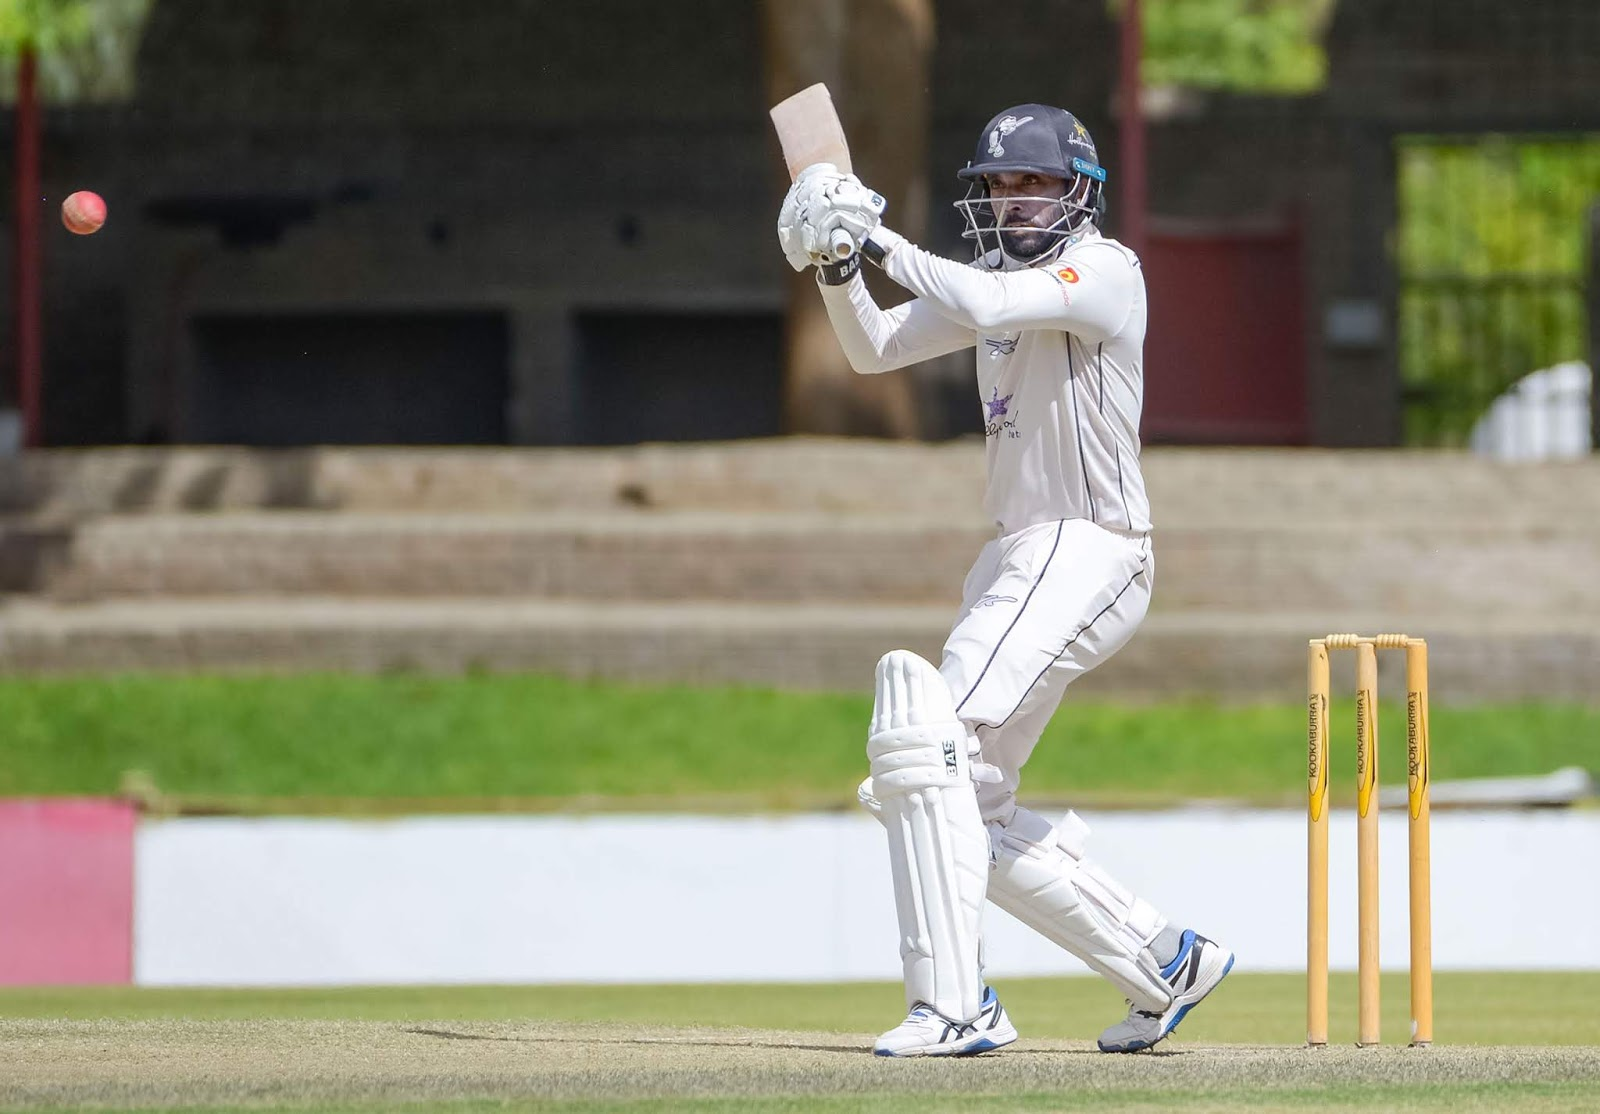 Another second innings half century from Cody Chetty helped the Hollywoodbets Dolphins rescue a draw against the World Sports Betting Cape Cobras in their CSA 4-Day Domestic Series match at the Pietermaritzburg Oval on Thursday.